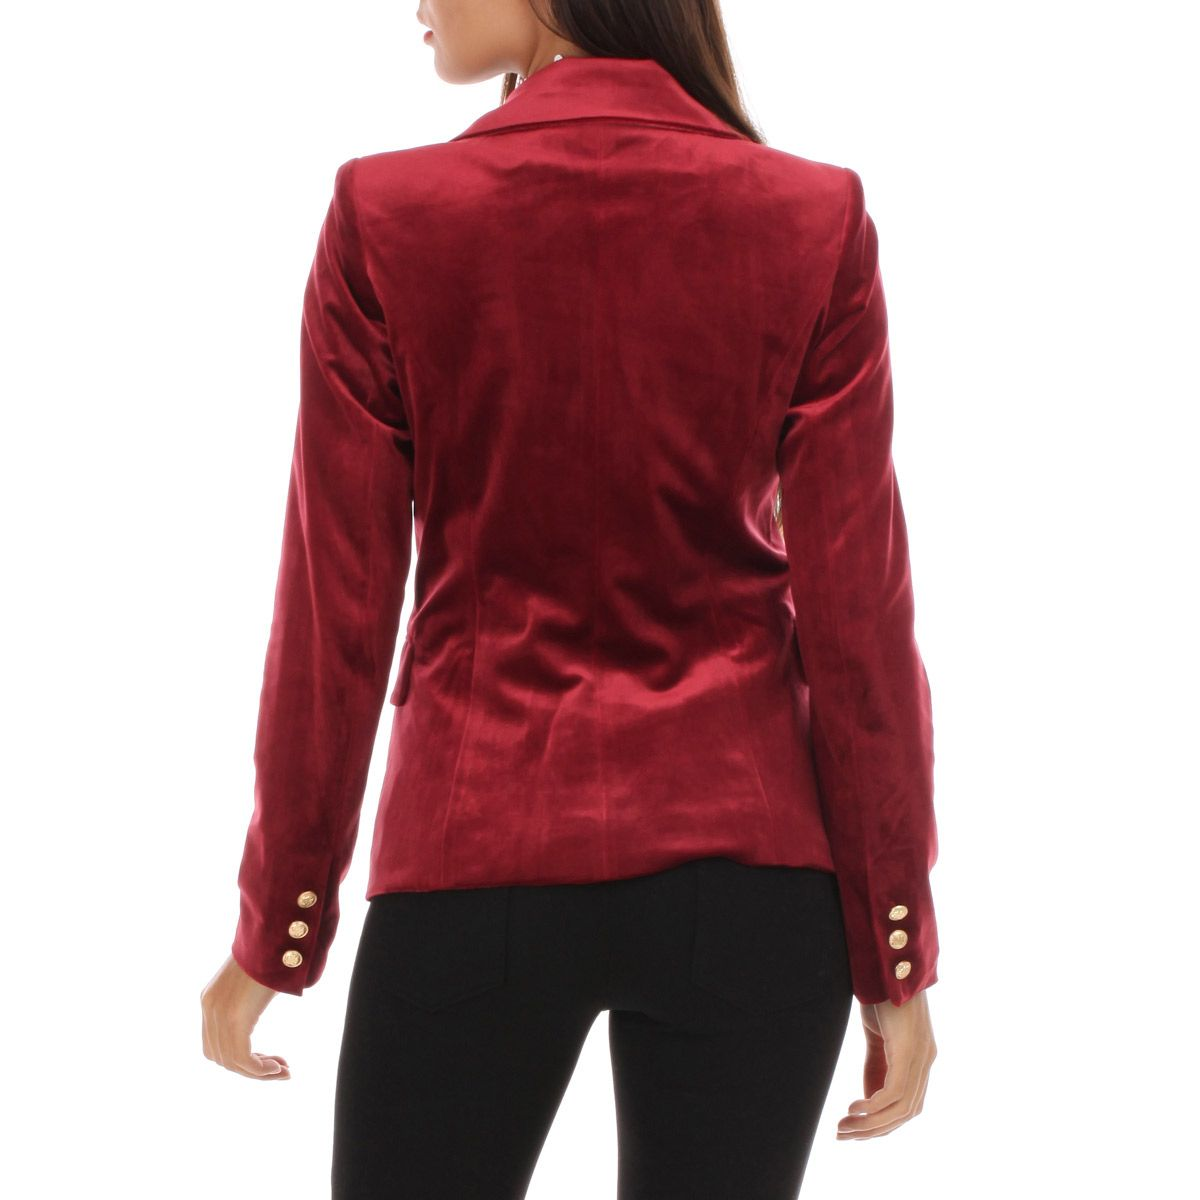 Veste en velours bordeaux style officier